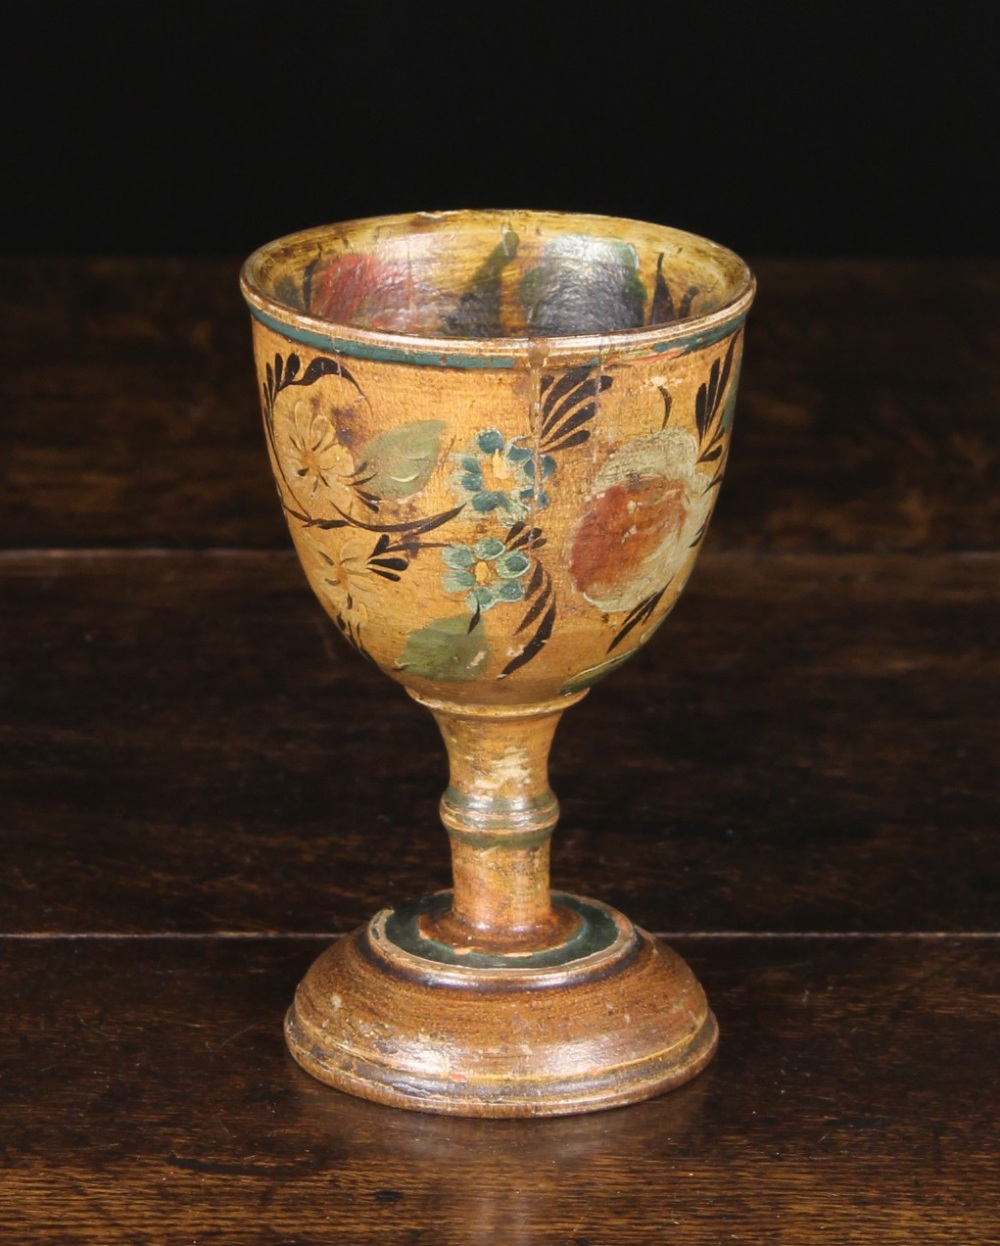 Lot 26 - A Charming 19th Century Turned Treen Goblet Circa 1830, possibly American.